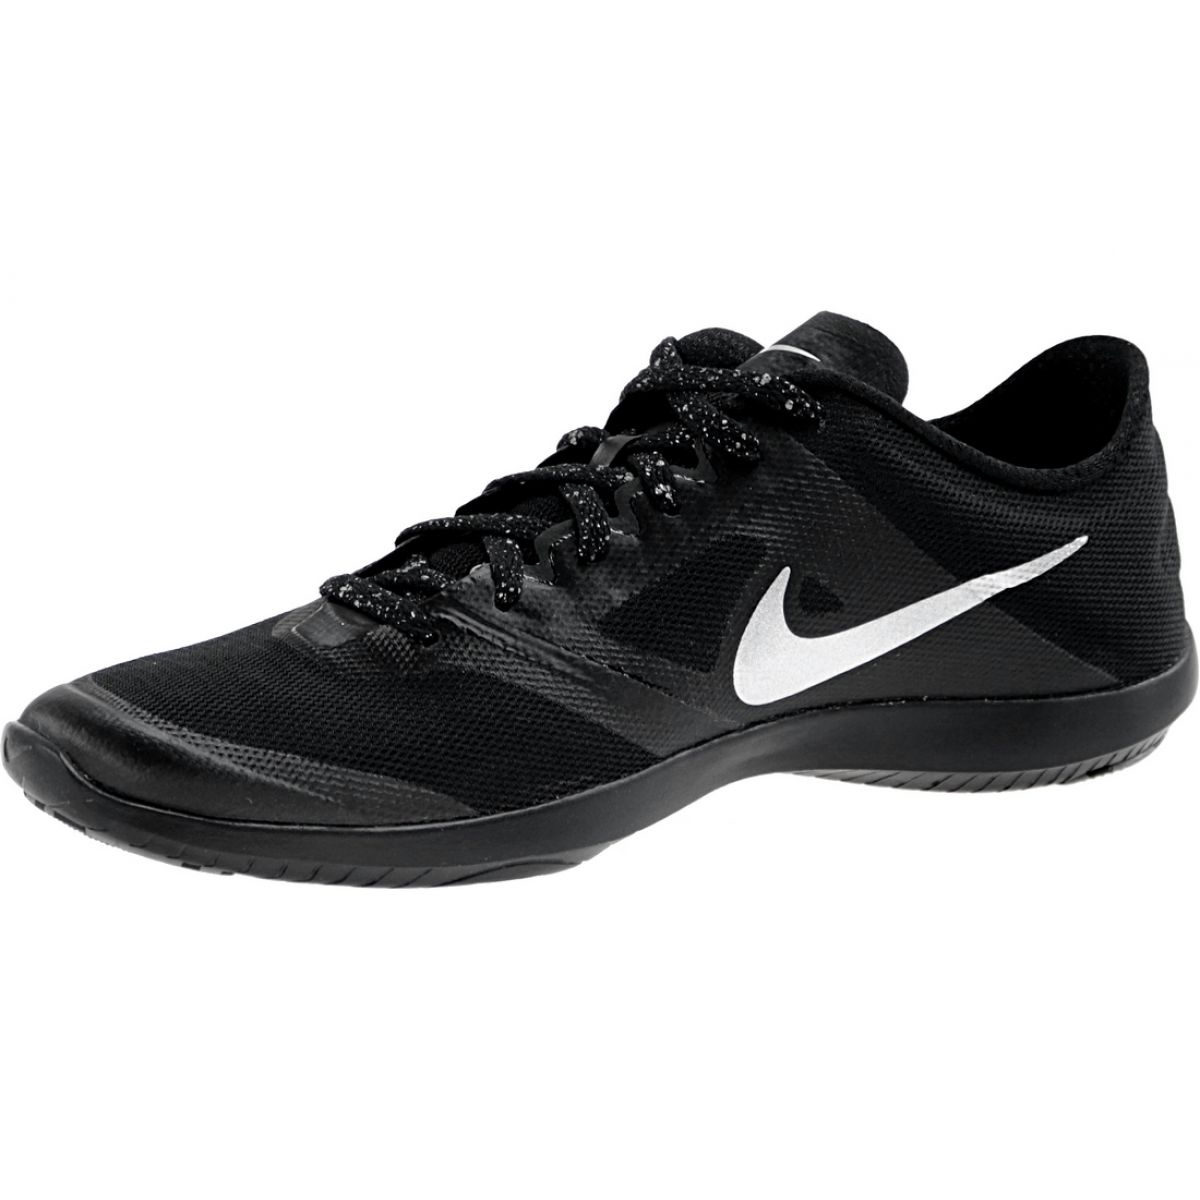 reputable site 908c2 5bf03 Nero Scarpe Nike Studio Trainer 2 W 684897-010